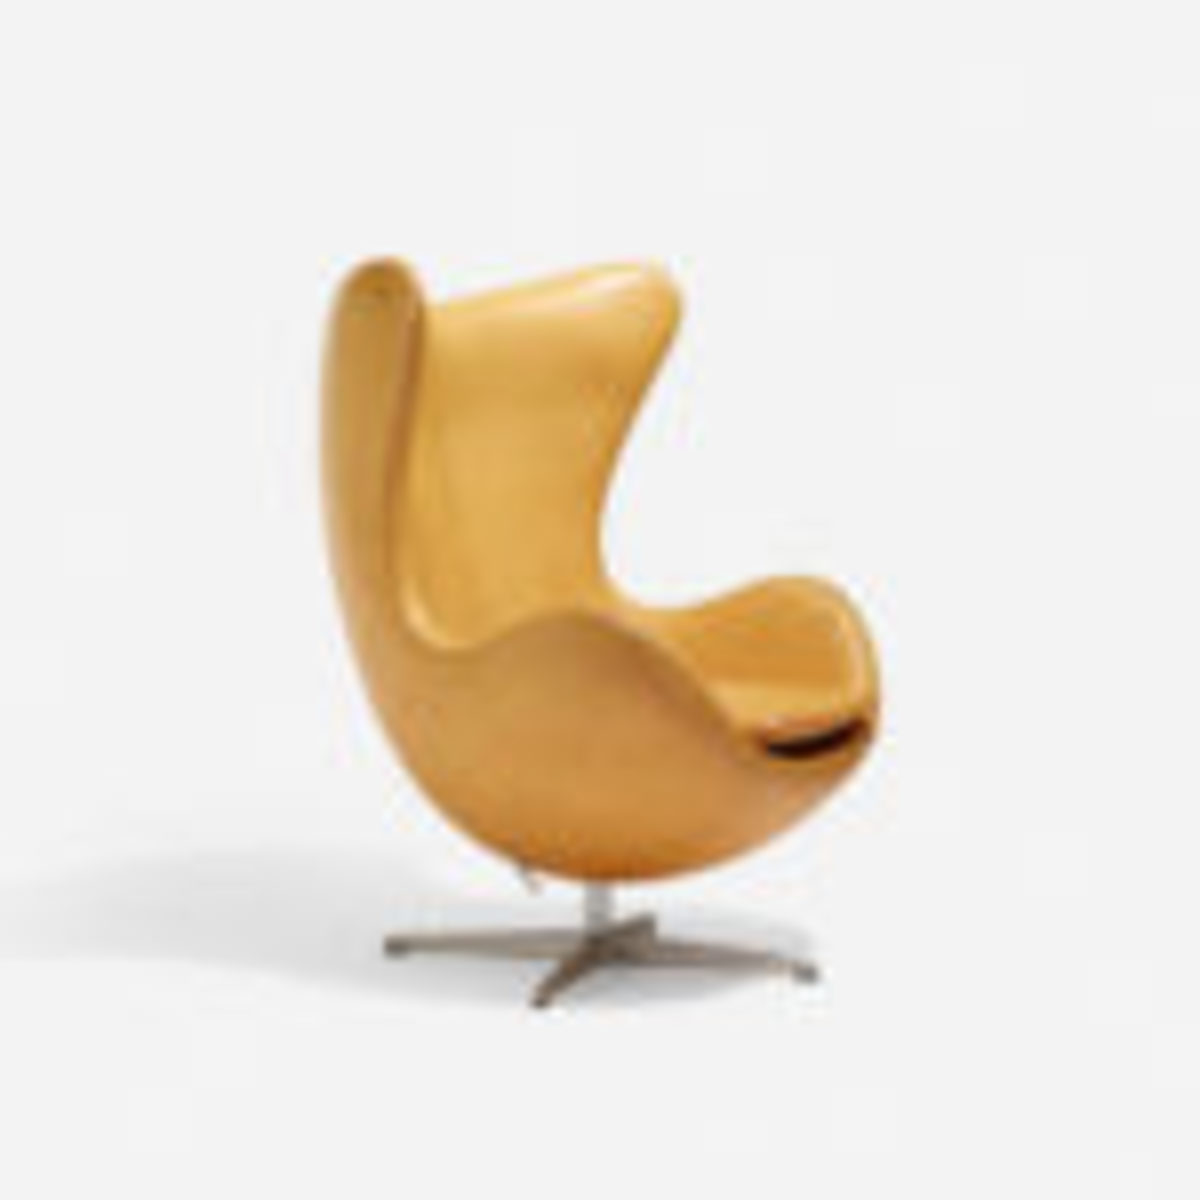 "Egg chair; leather, cast aluminum, plastic; Arne Jacobsen for Fritz Jansen, signed, documented, 34"" x 32"" x 41.5"", Denmark, 1958, realized $7,500. Courtesy Wright: Auctions of Art and Design, www.wright20.com"